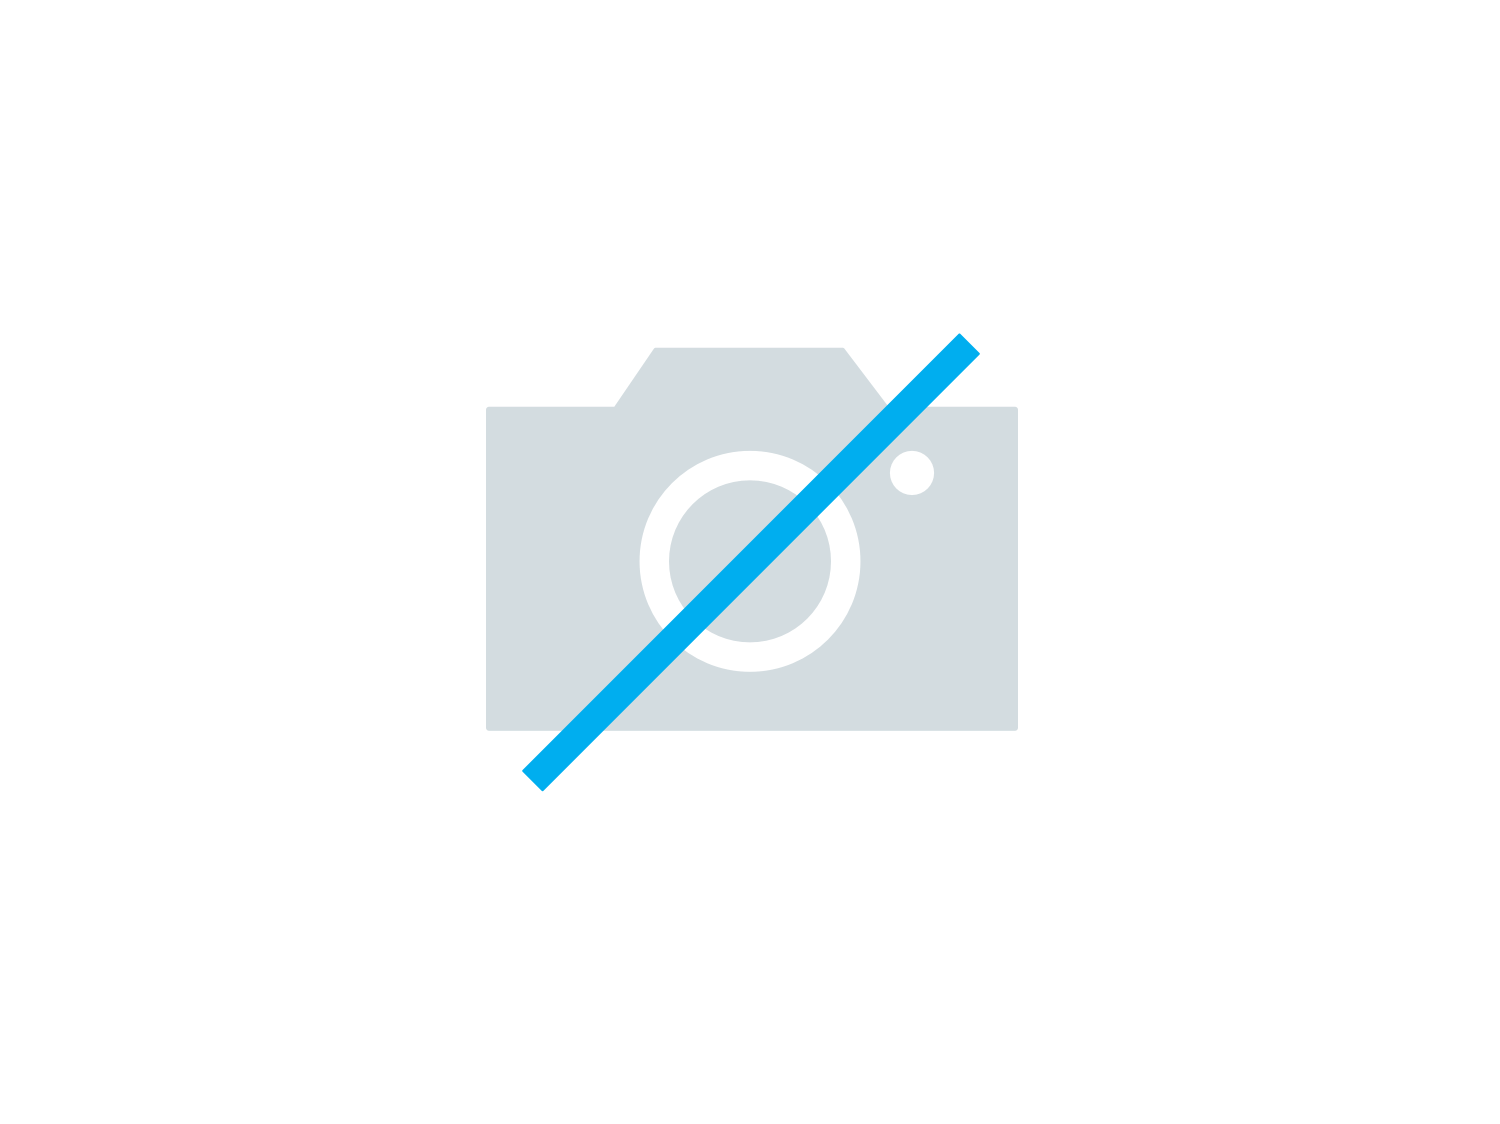 Placemat Leather optic Placemat 33x46cm